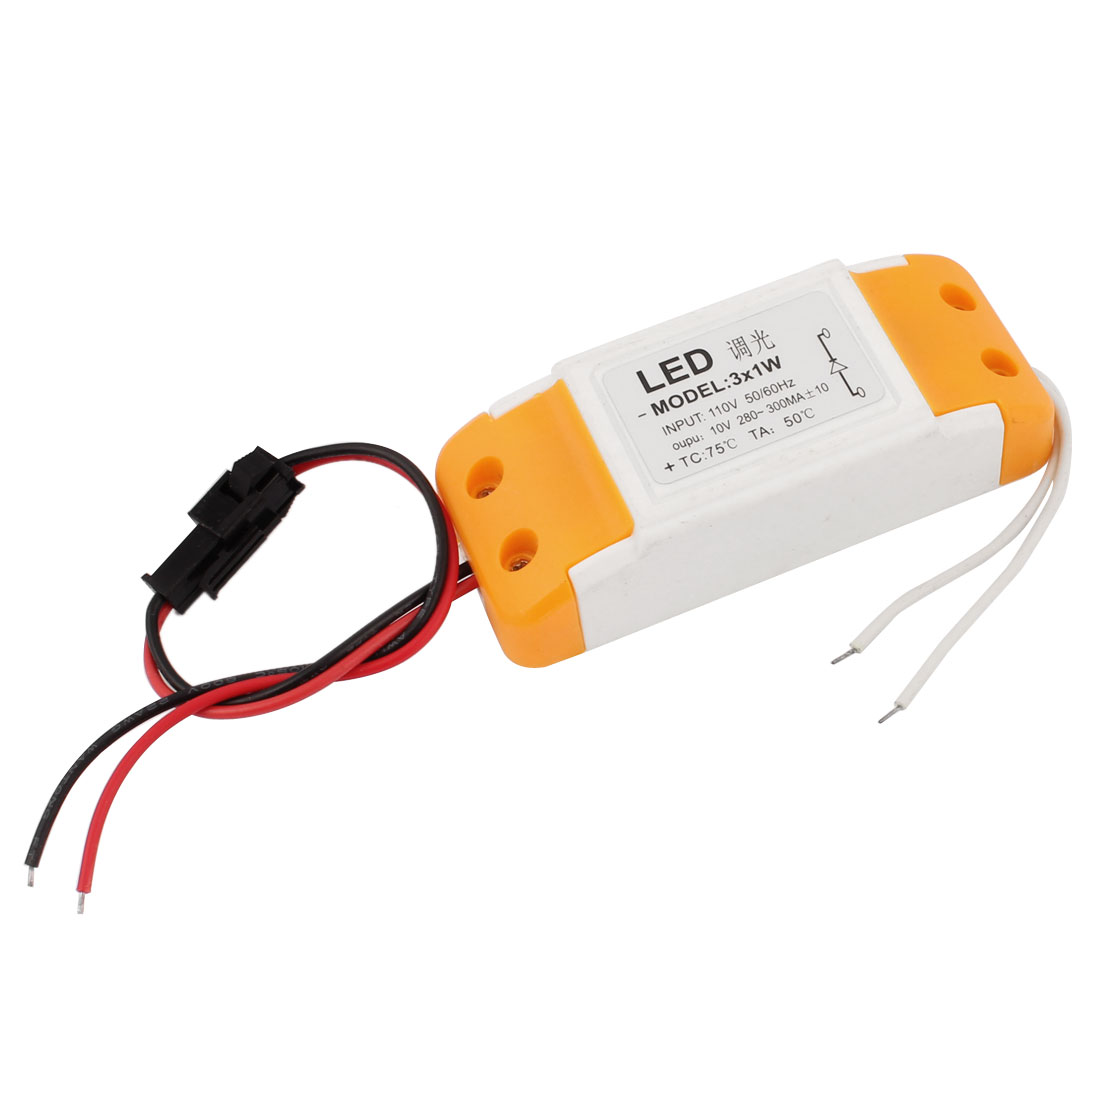 AC110V to DC10V 280-300mA 3x1W Plastic Case Waterproof LED Dimmer Driver Power Converter Adapter